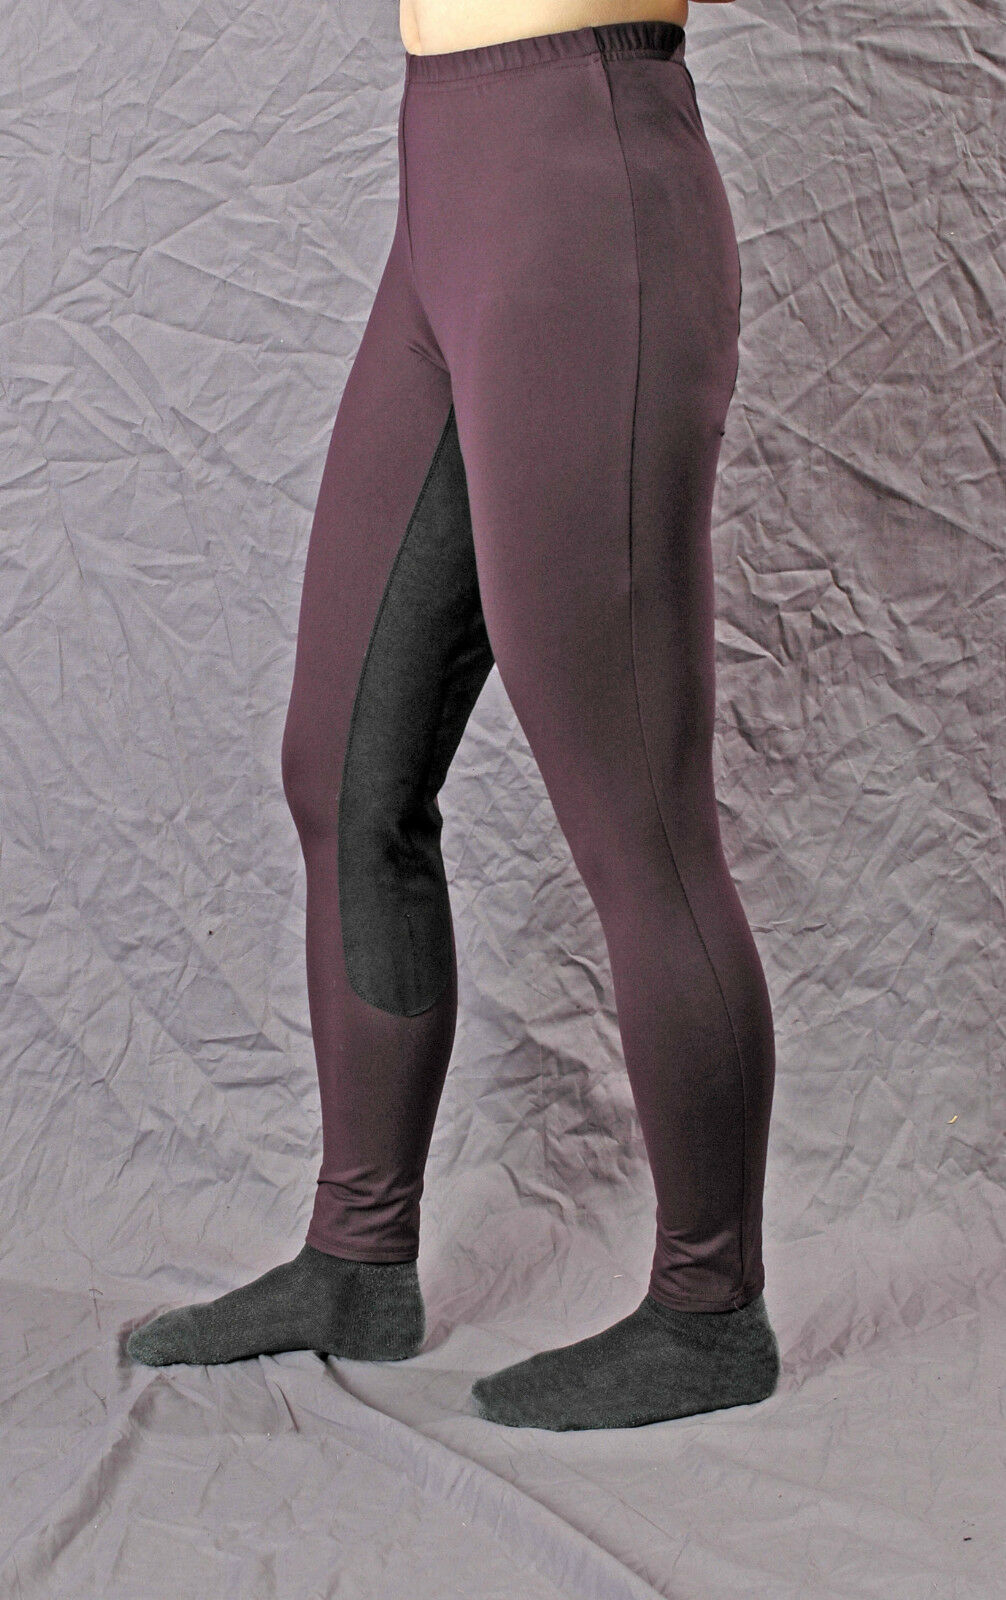 Adult Riding Tights- Super soft and comfortable